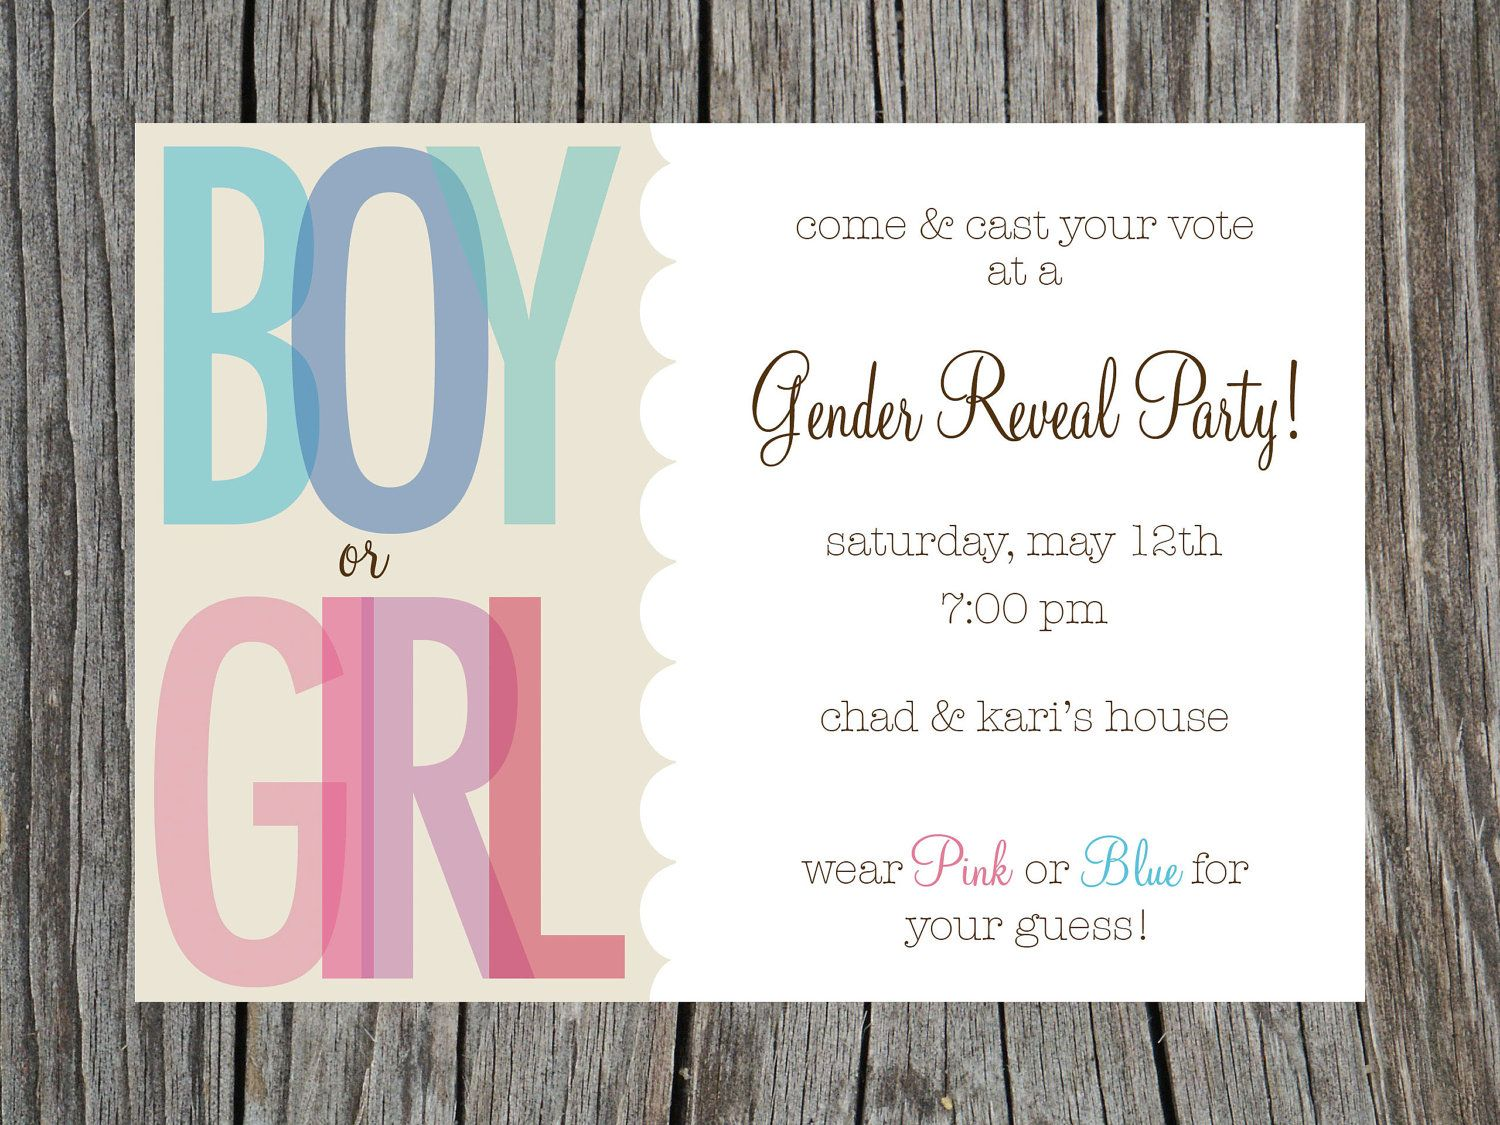 Pin By Crc On Gender Reveal Ideas Gender Reveal Party Invitations Gender Reveal Invitations Template Gender Reveal Invitations